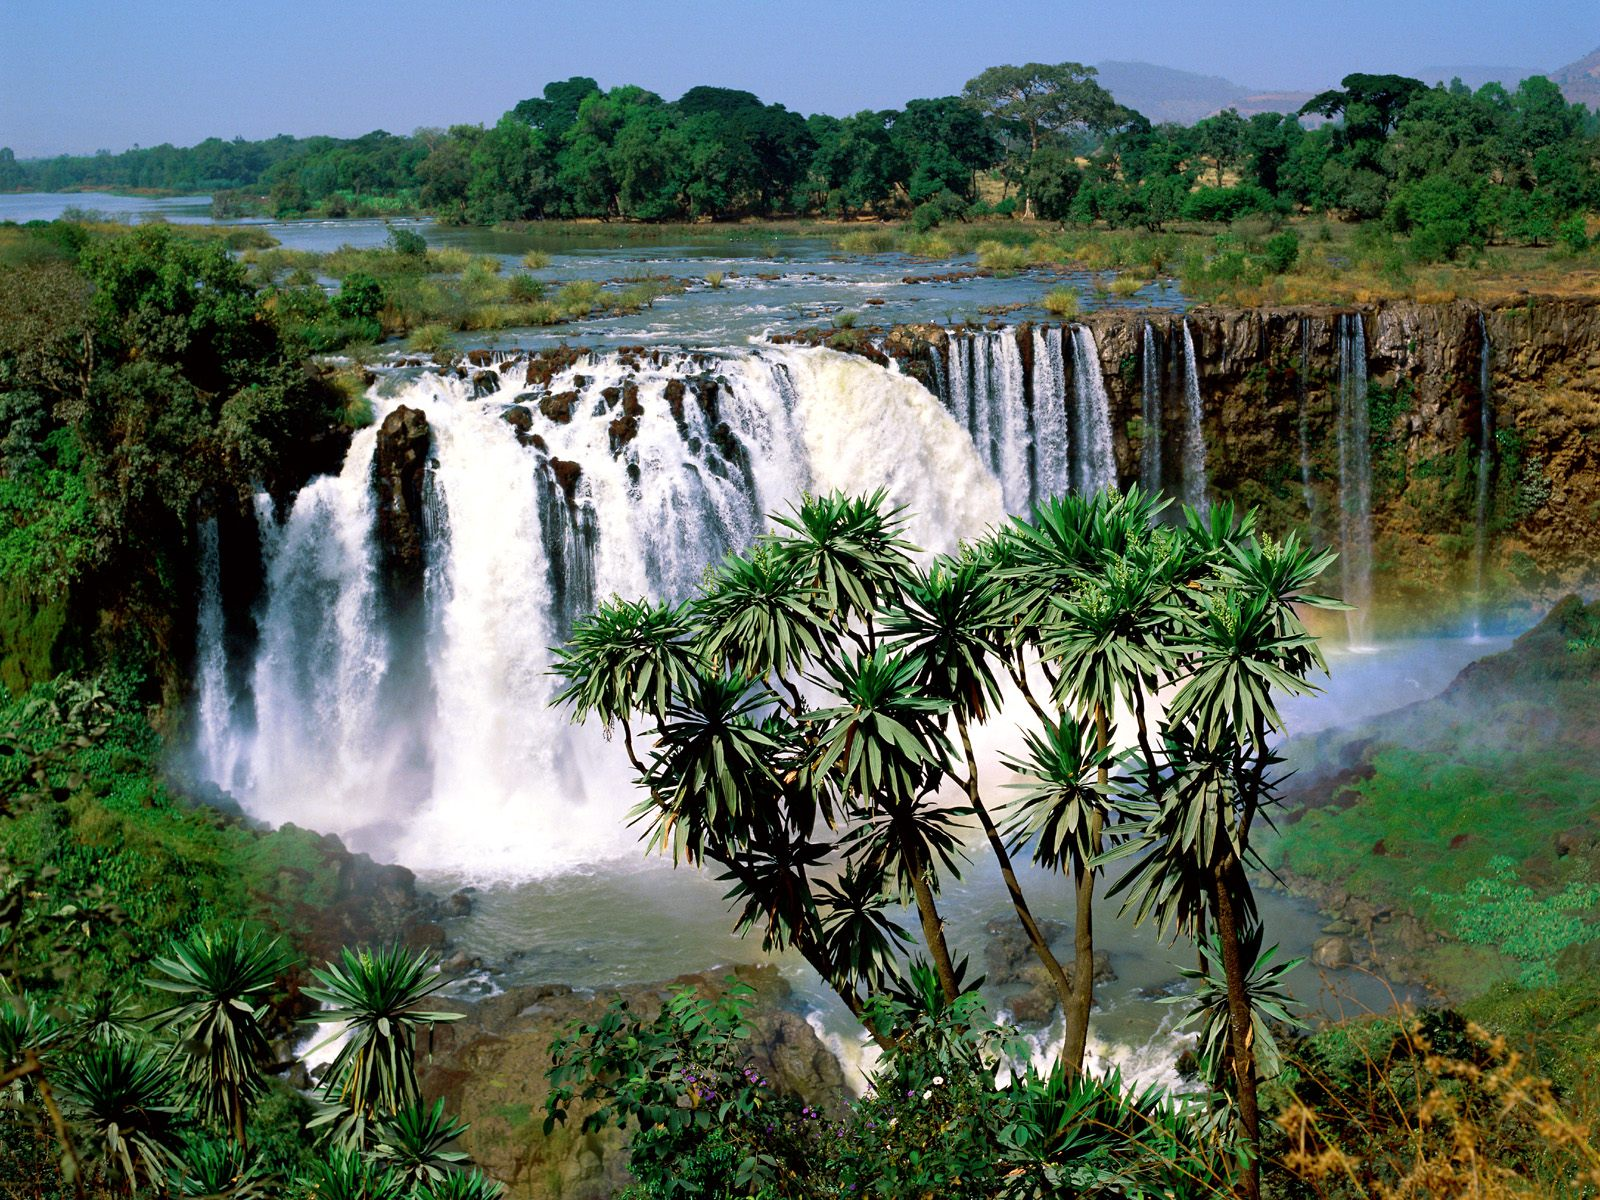 What Are The Natural Resources Available In Zimbabwe